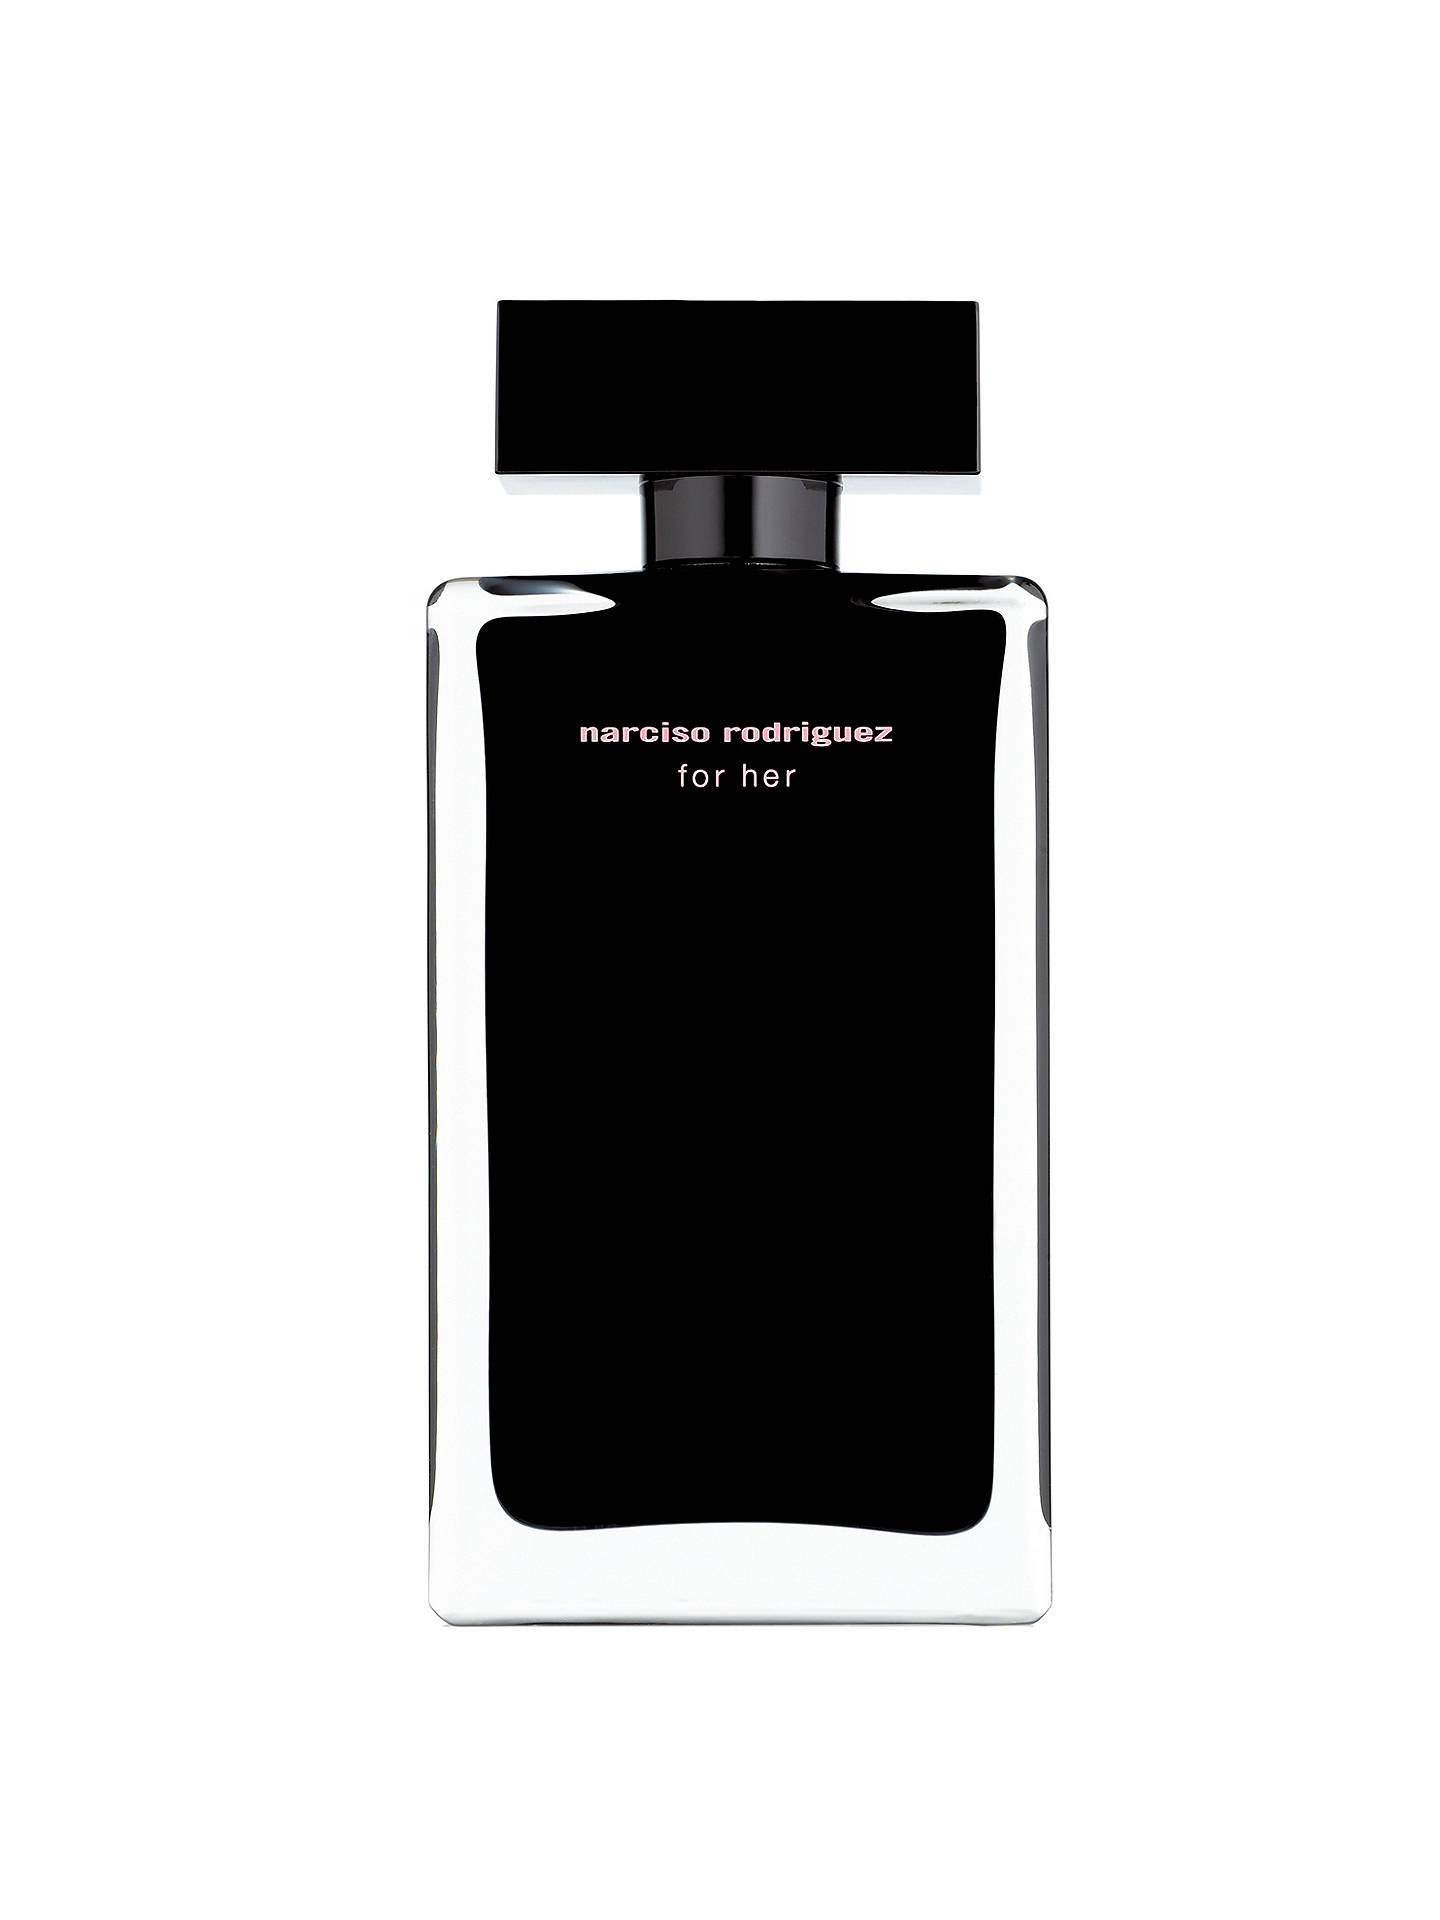 Buy Narciso Rodriguez for Her Eau de Toilette, 30ml Online at johnlewis.com